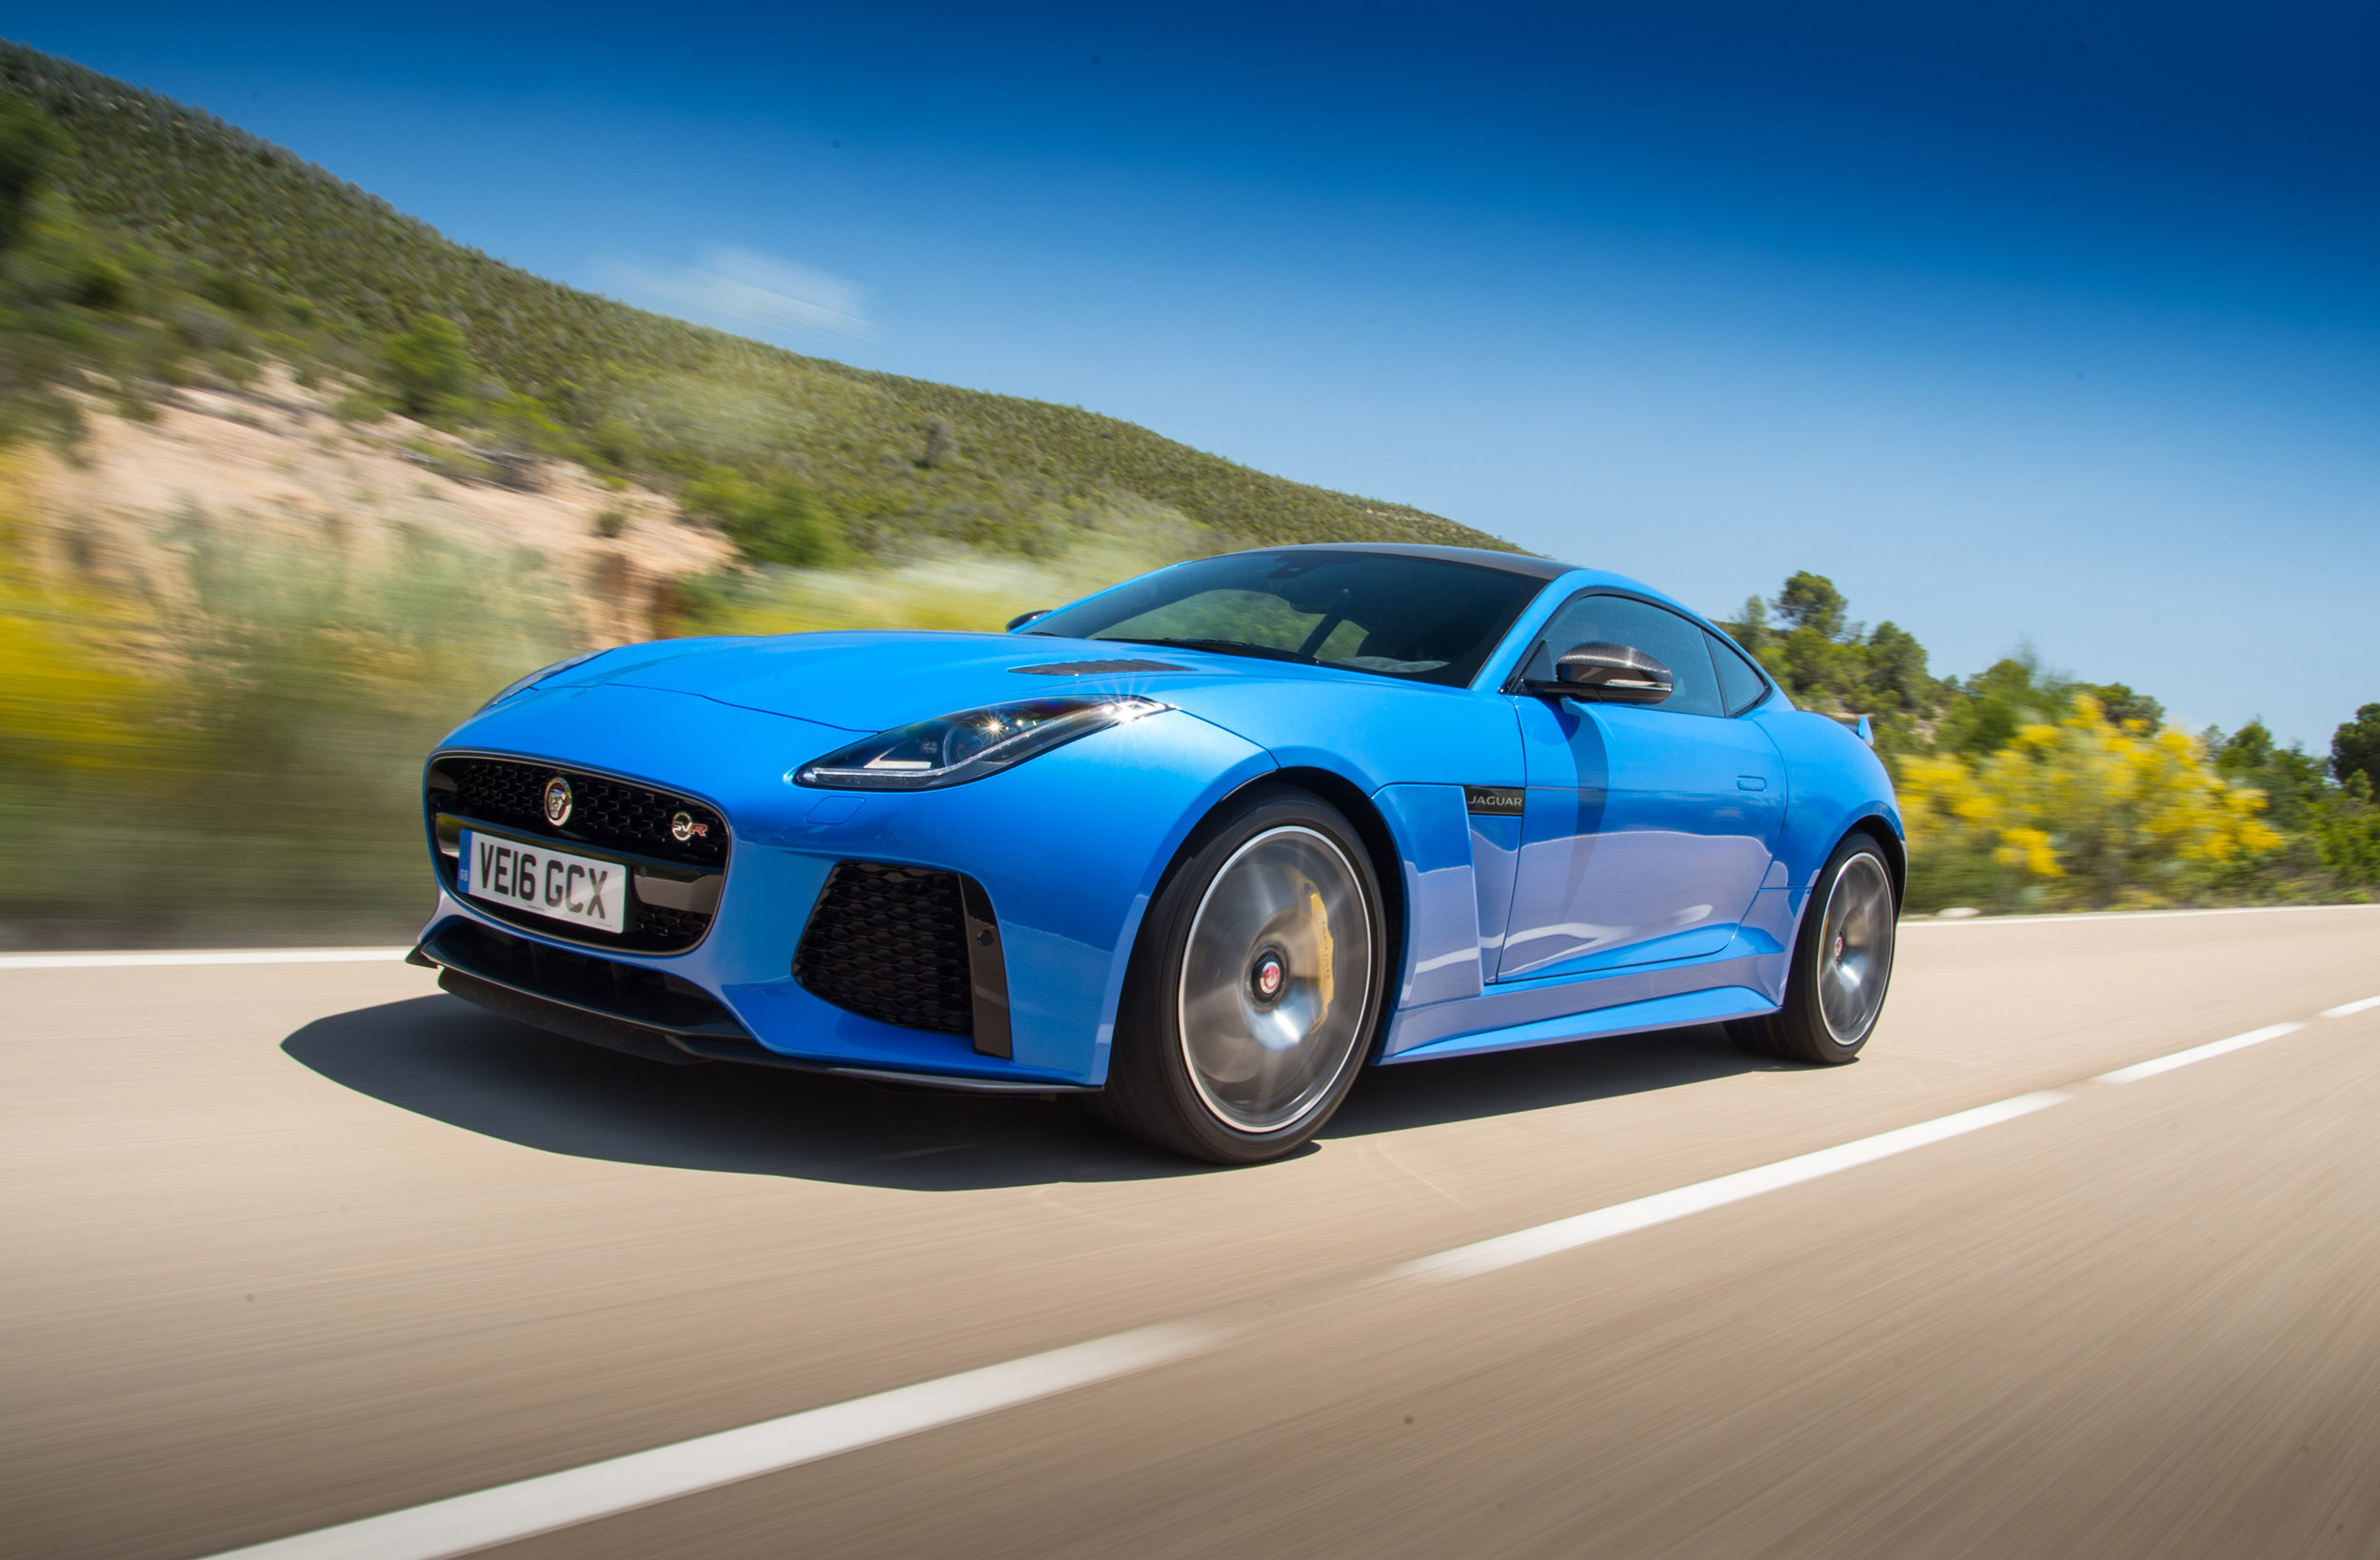 Jaguar F-type SVR review - improvements in every area for